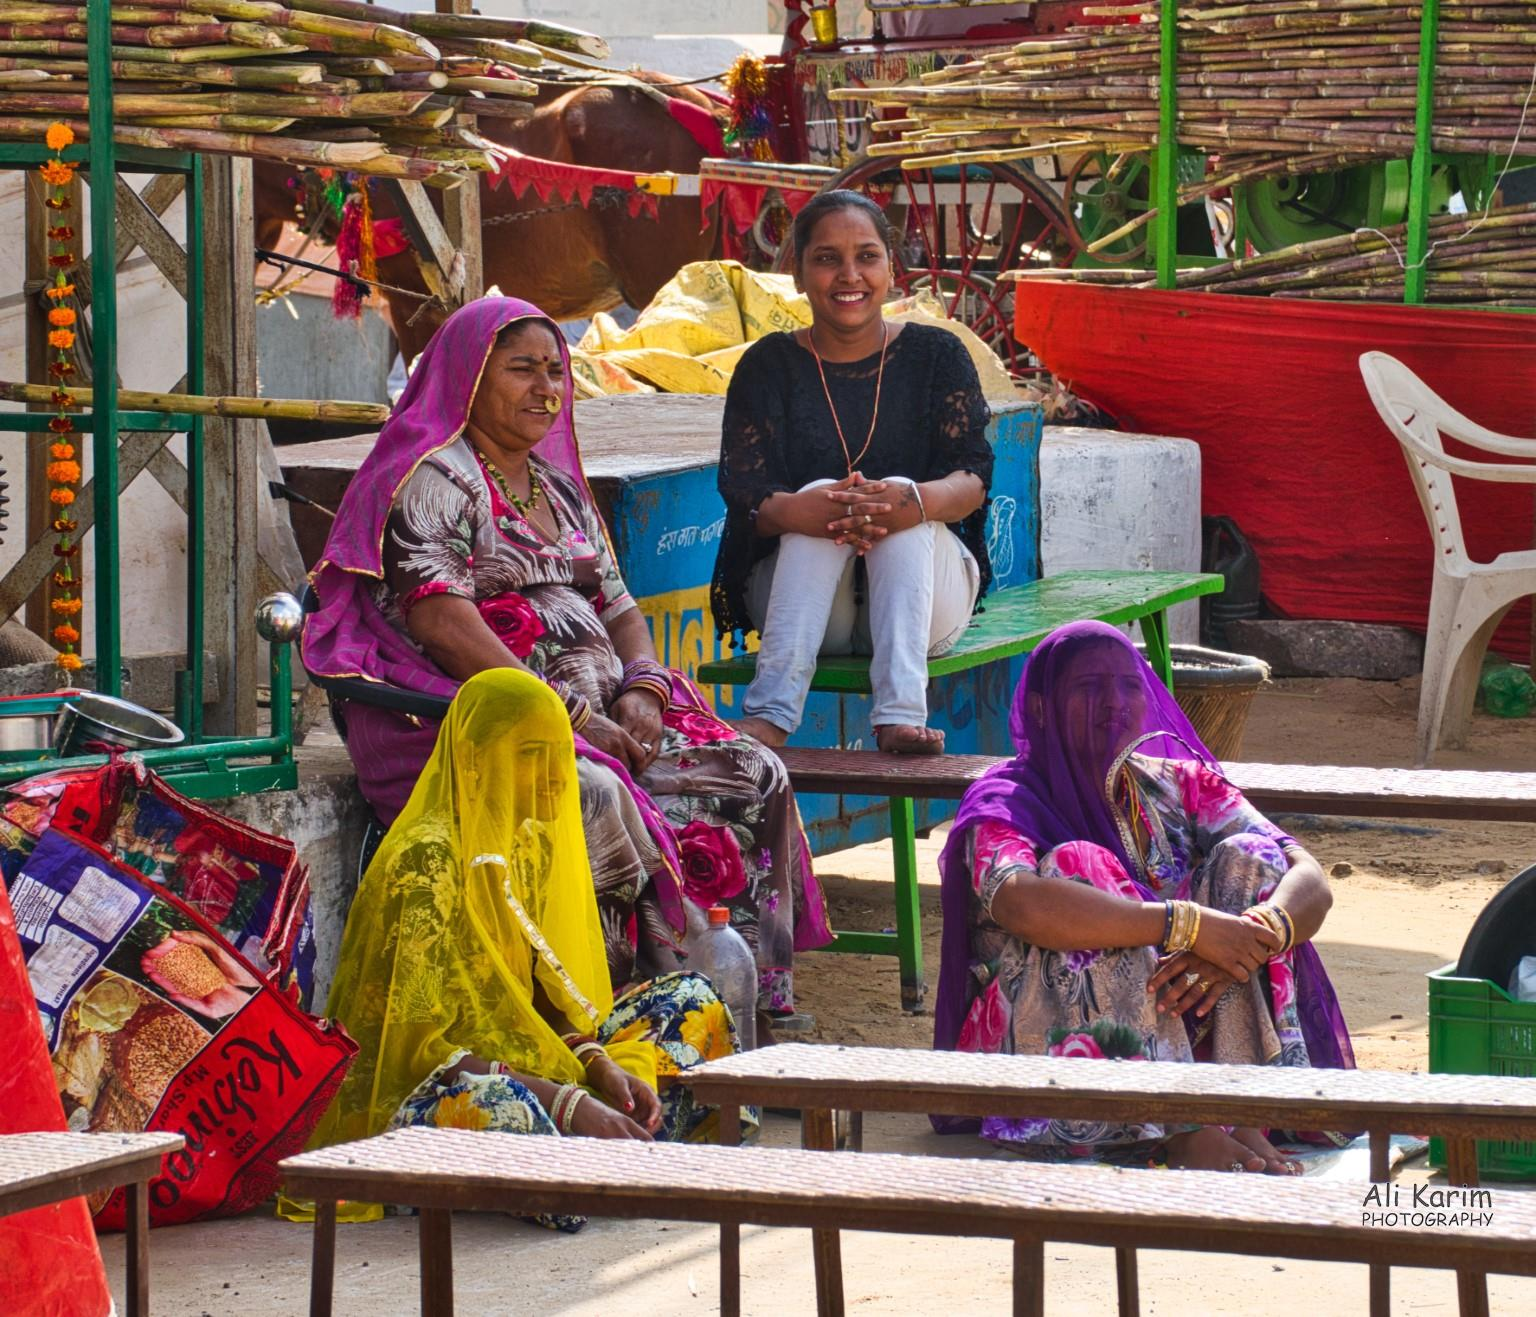 Pushkar, Rajasthan Local women people watching; note how many women cover their faces with their shawls to prevent the evil eye